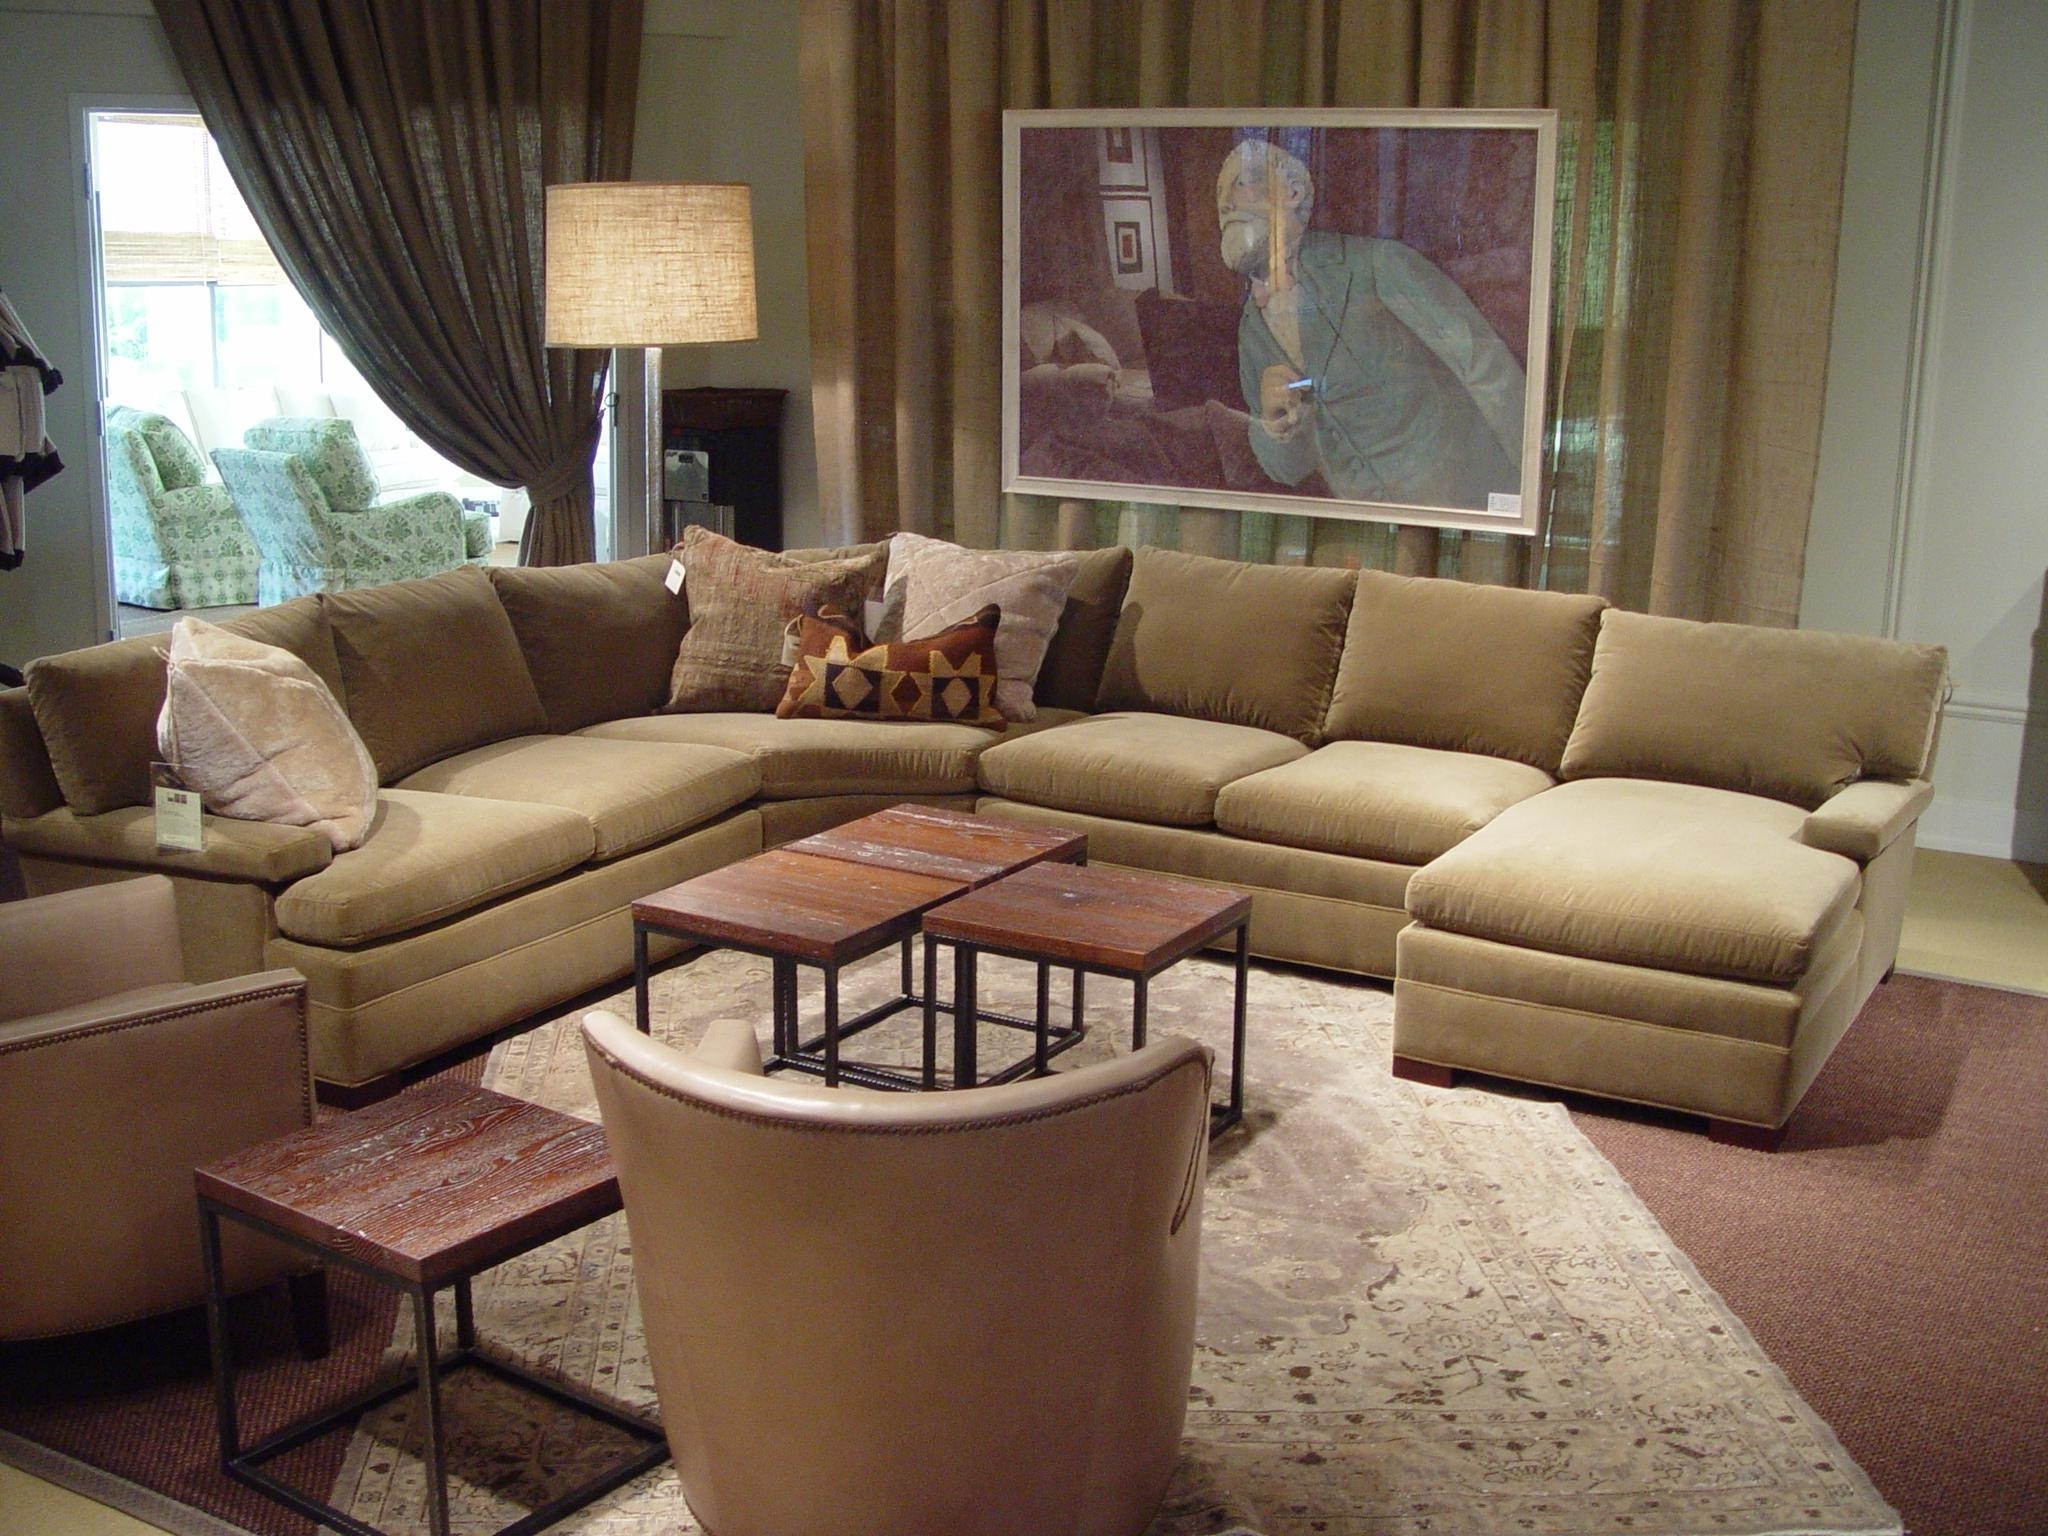 20 Collection Of Lee Industries Sectional Sofa | Sofa Ideas In Lee Industries Sectional Sofas (Gallery 1 of 10)